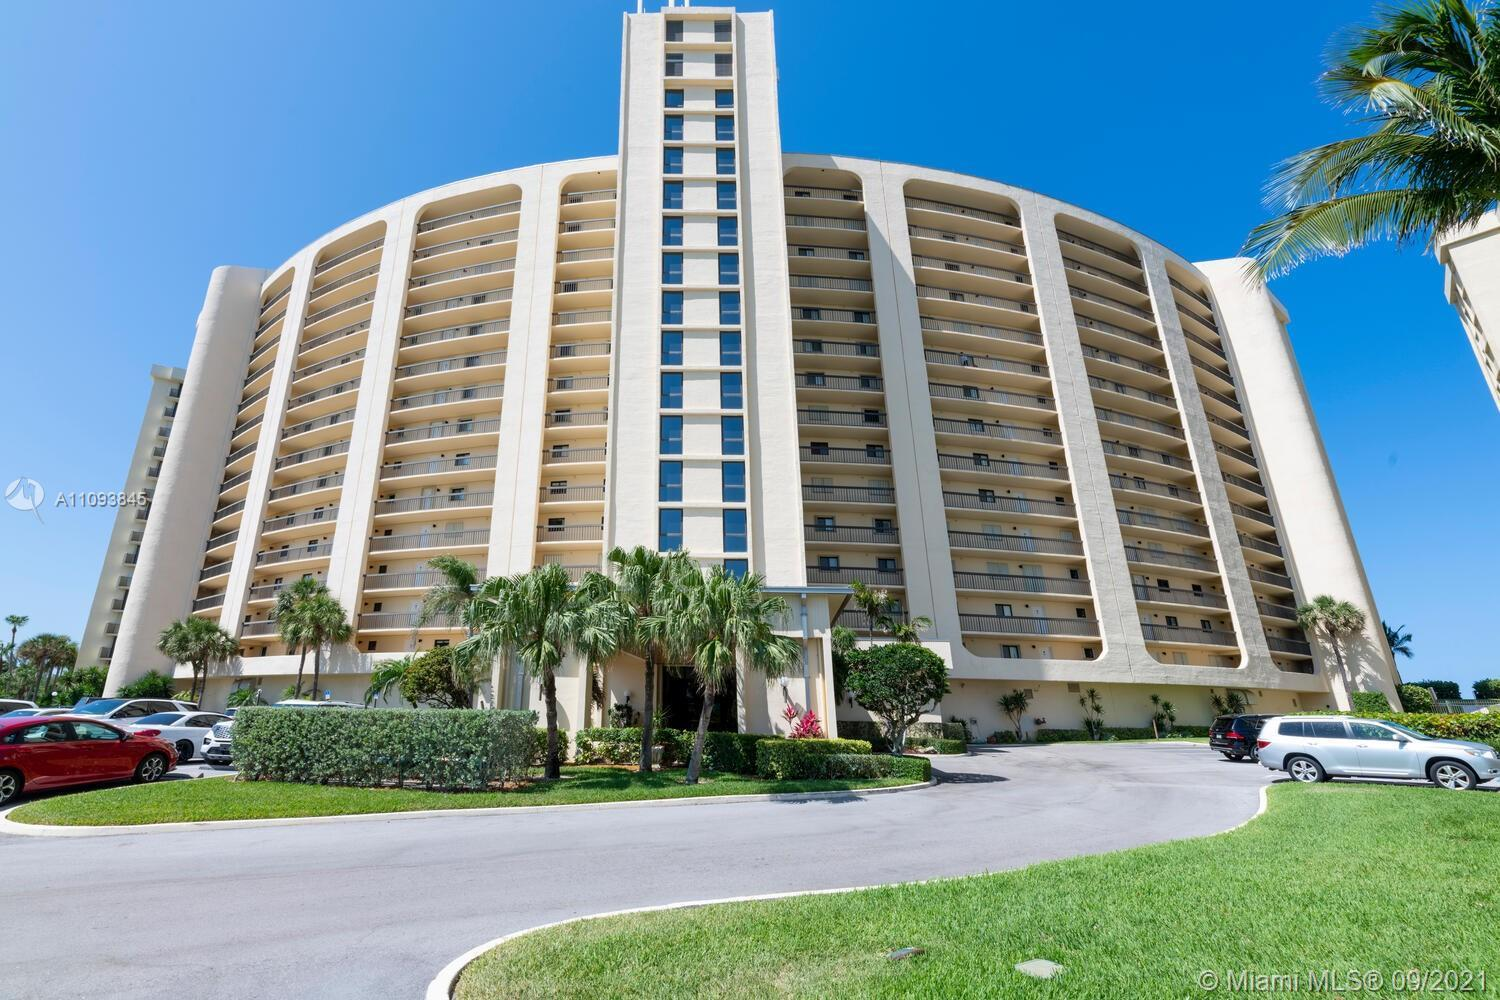 OCCUPIED - KNOCK FIRST - USE SUPRA!!   Stunning ocean views from this 4th floor condo in desirable O